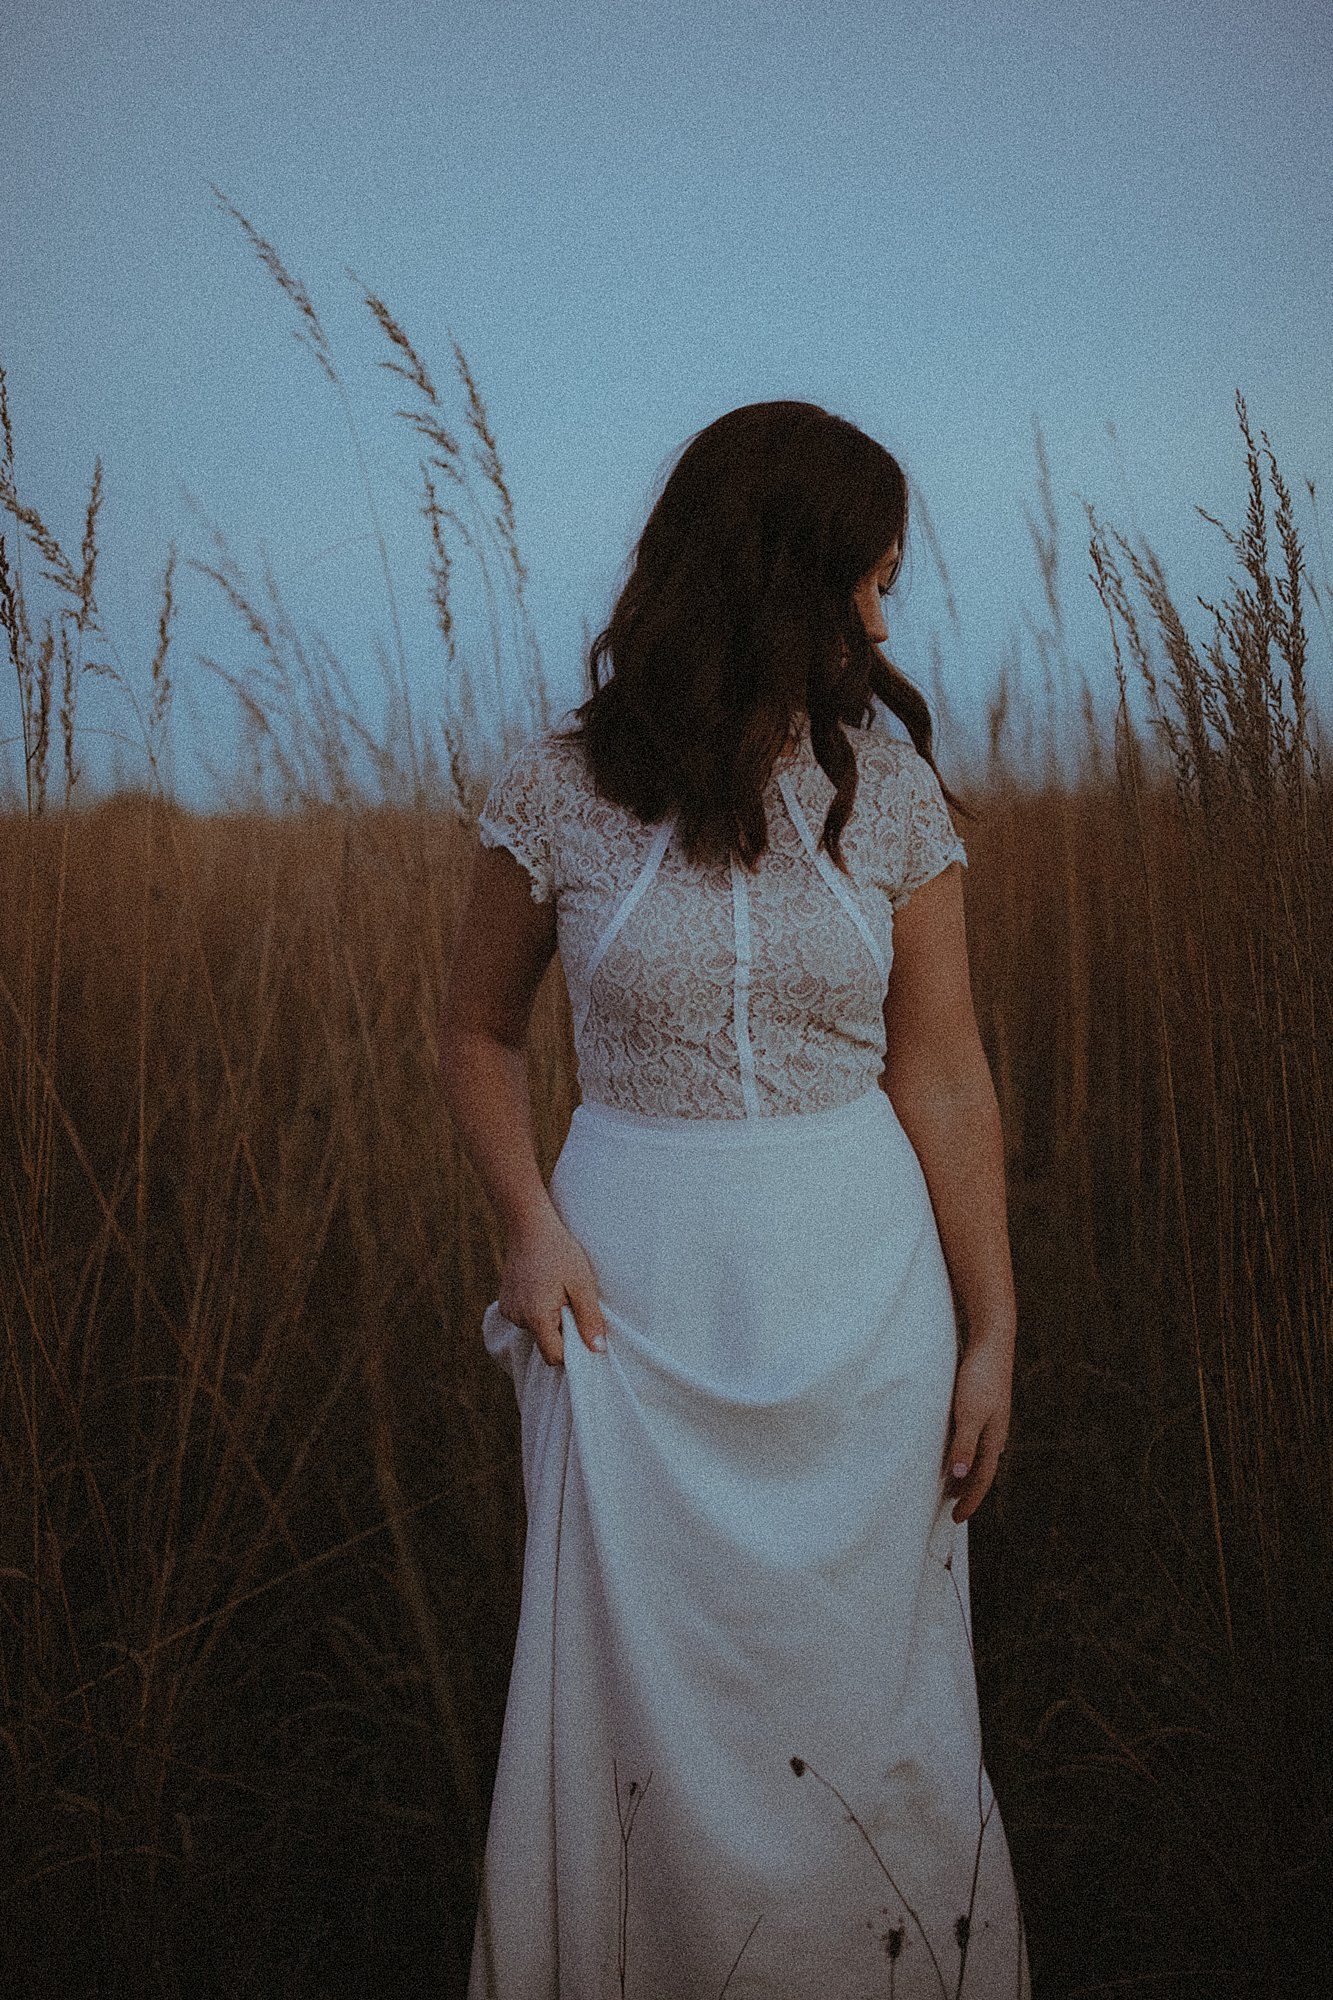 bride in field of wheat at dusk